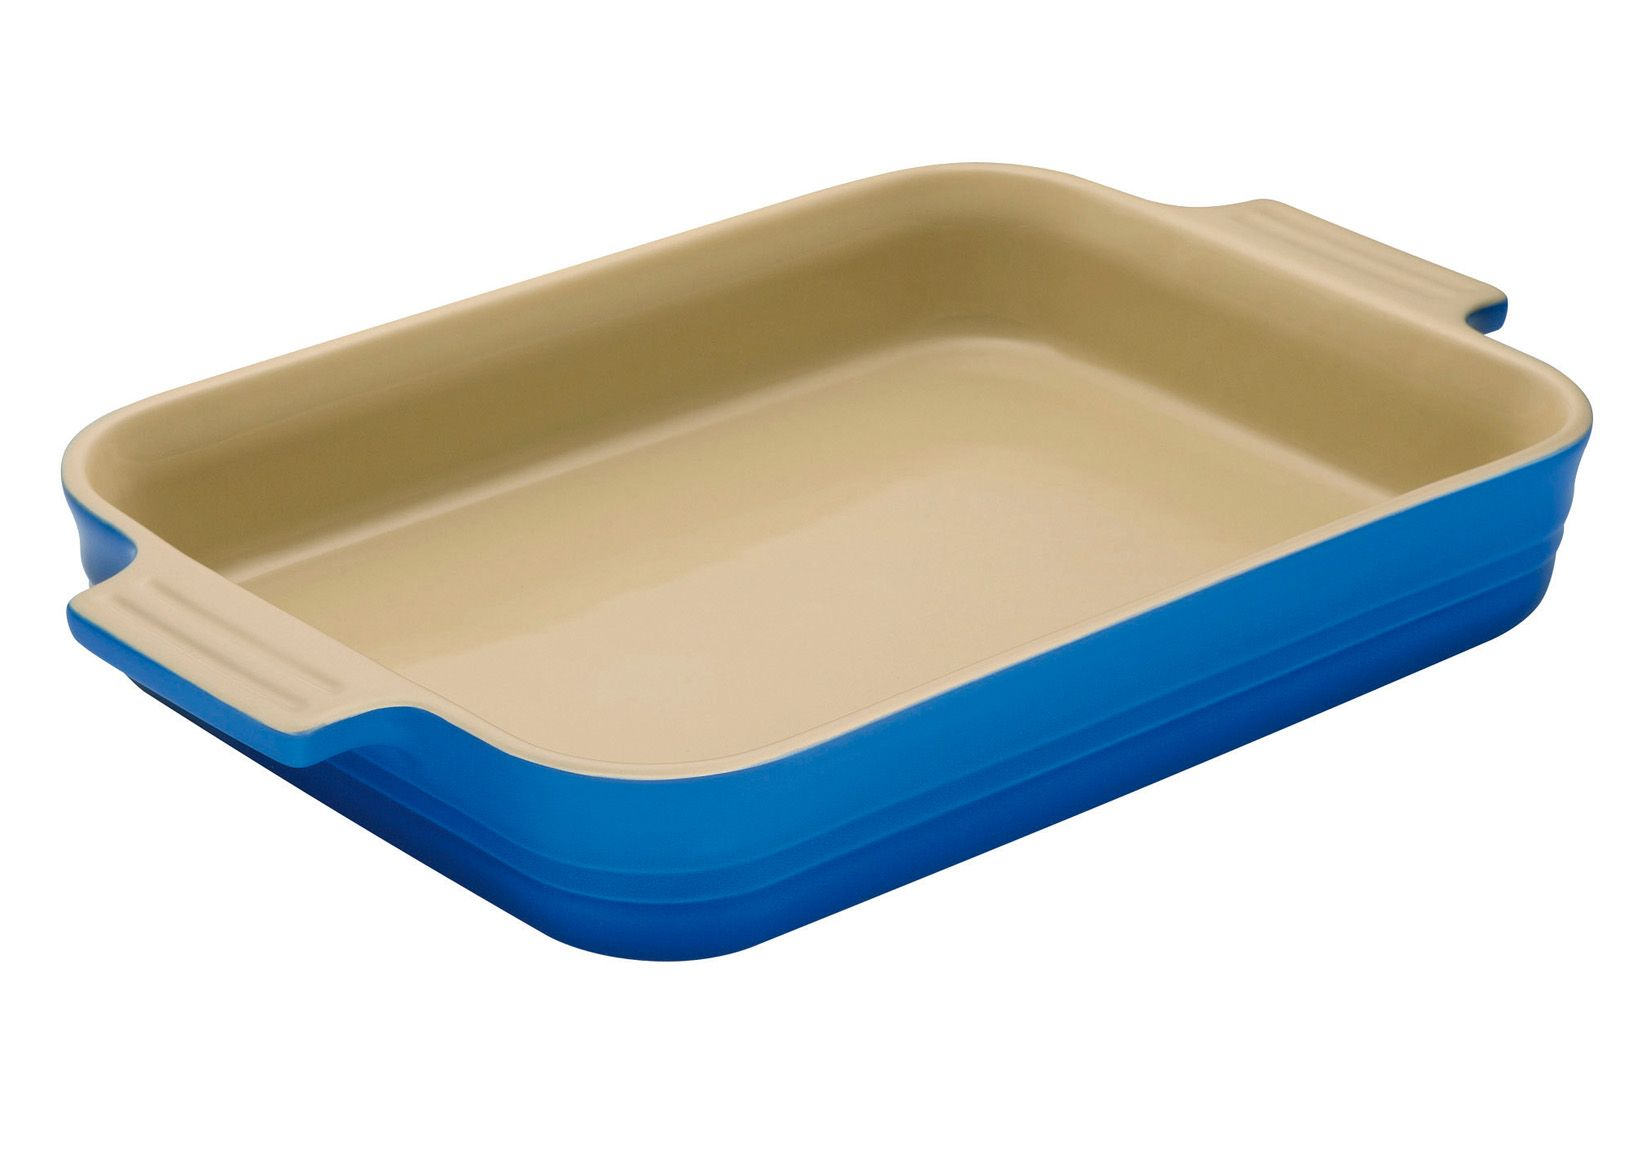 32cm Rectangular Dish Marseille Blue